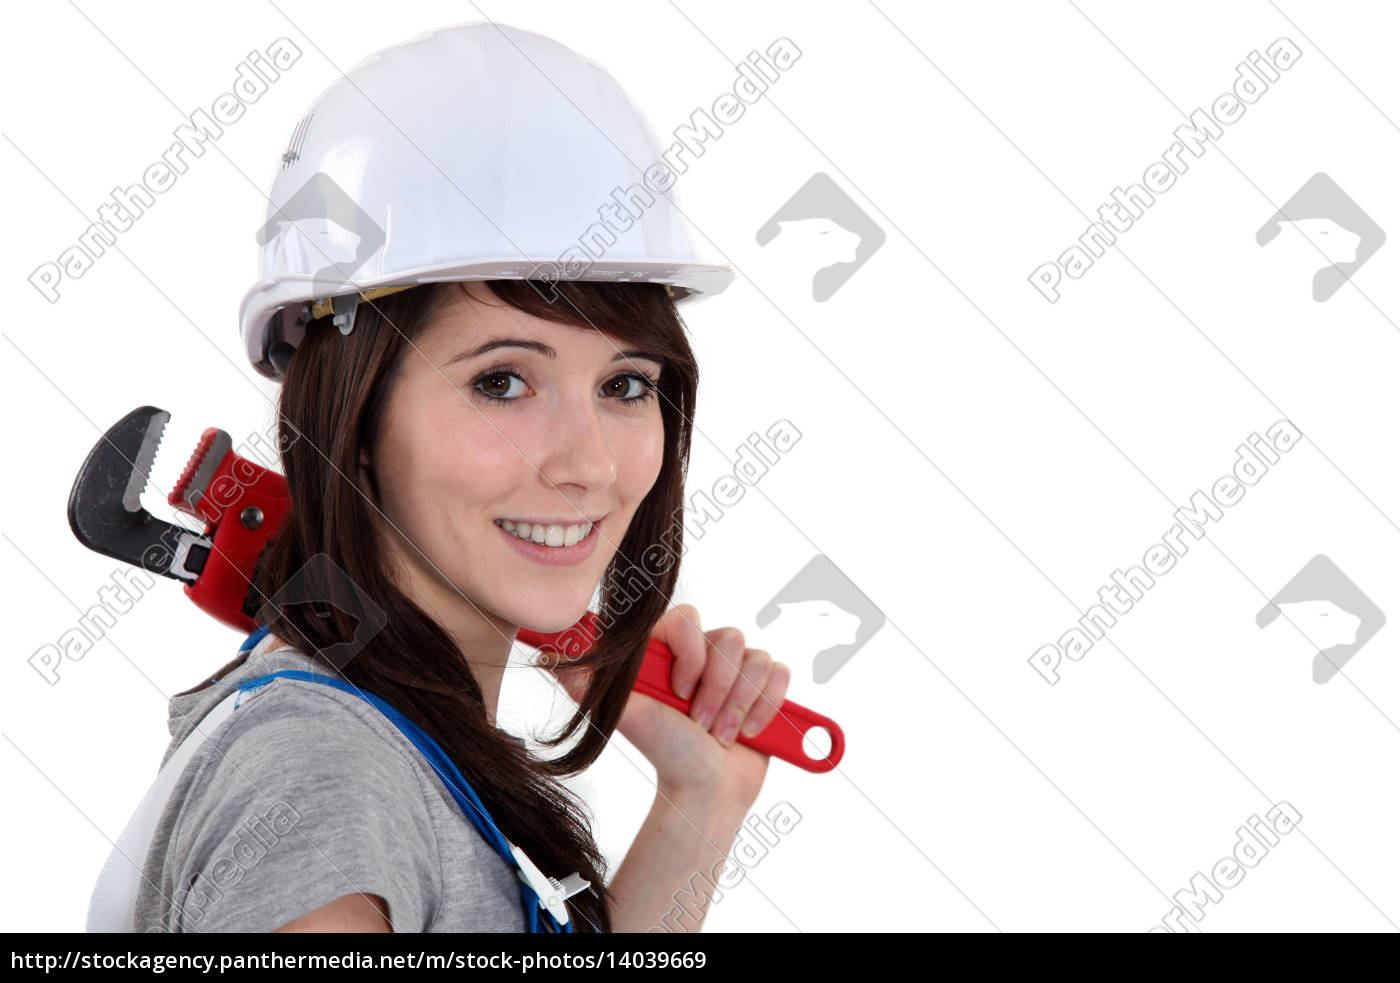 woman, resting, wrench, on, shoulder - 14039669